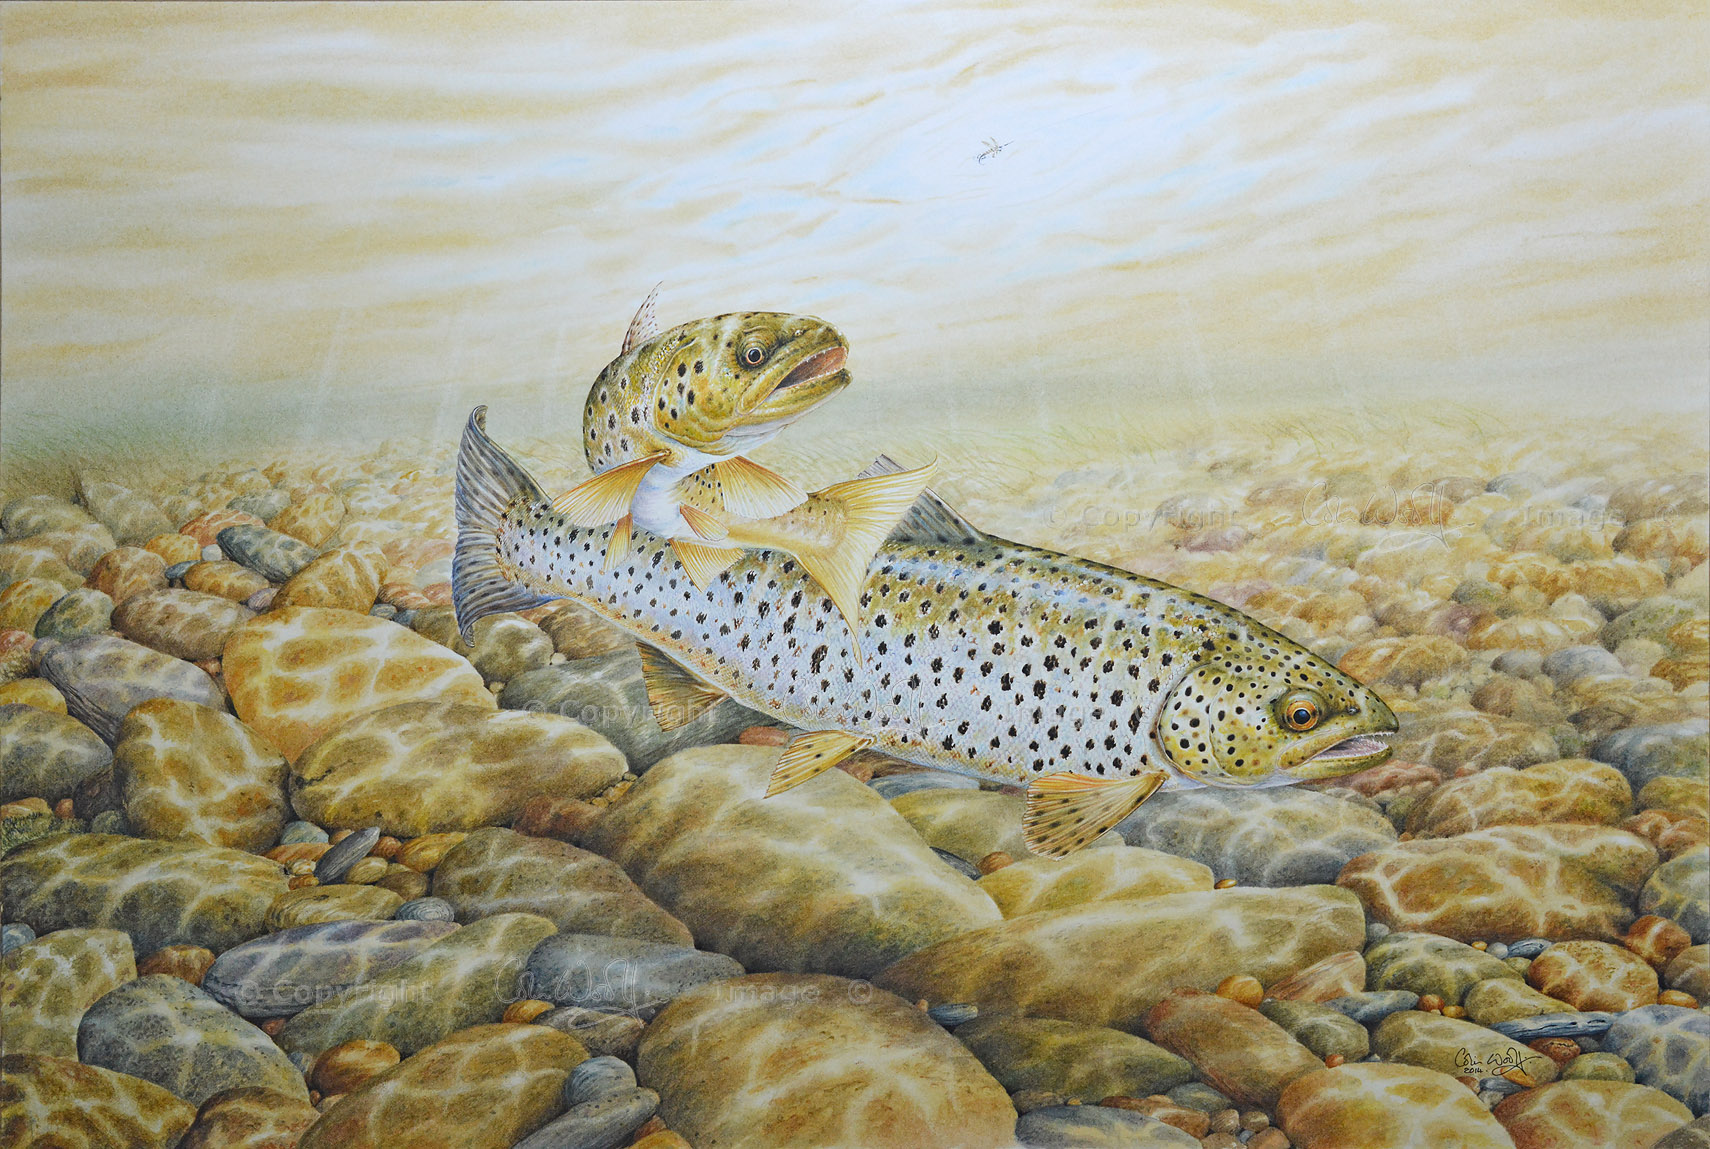 Brown Trout Foiled Again